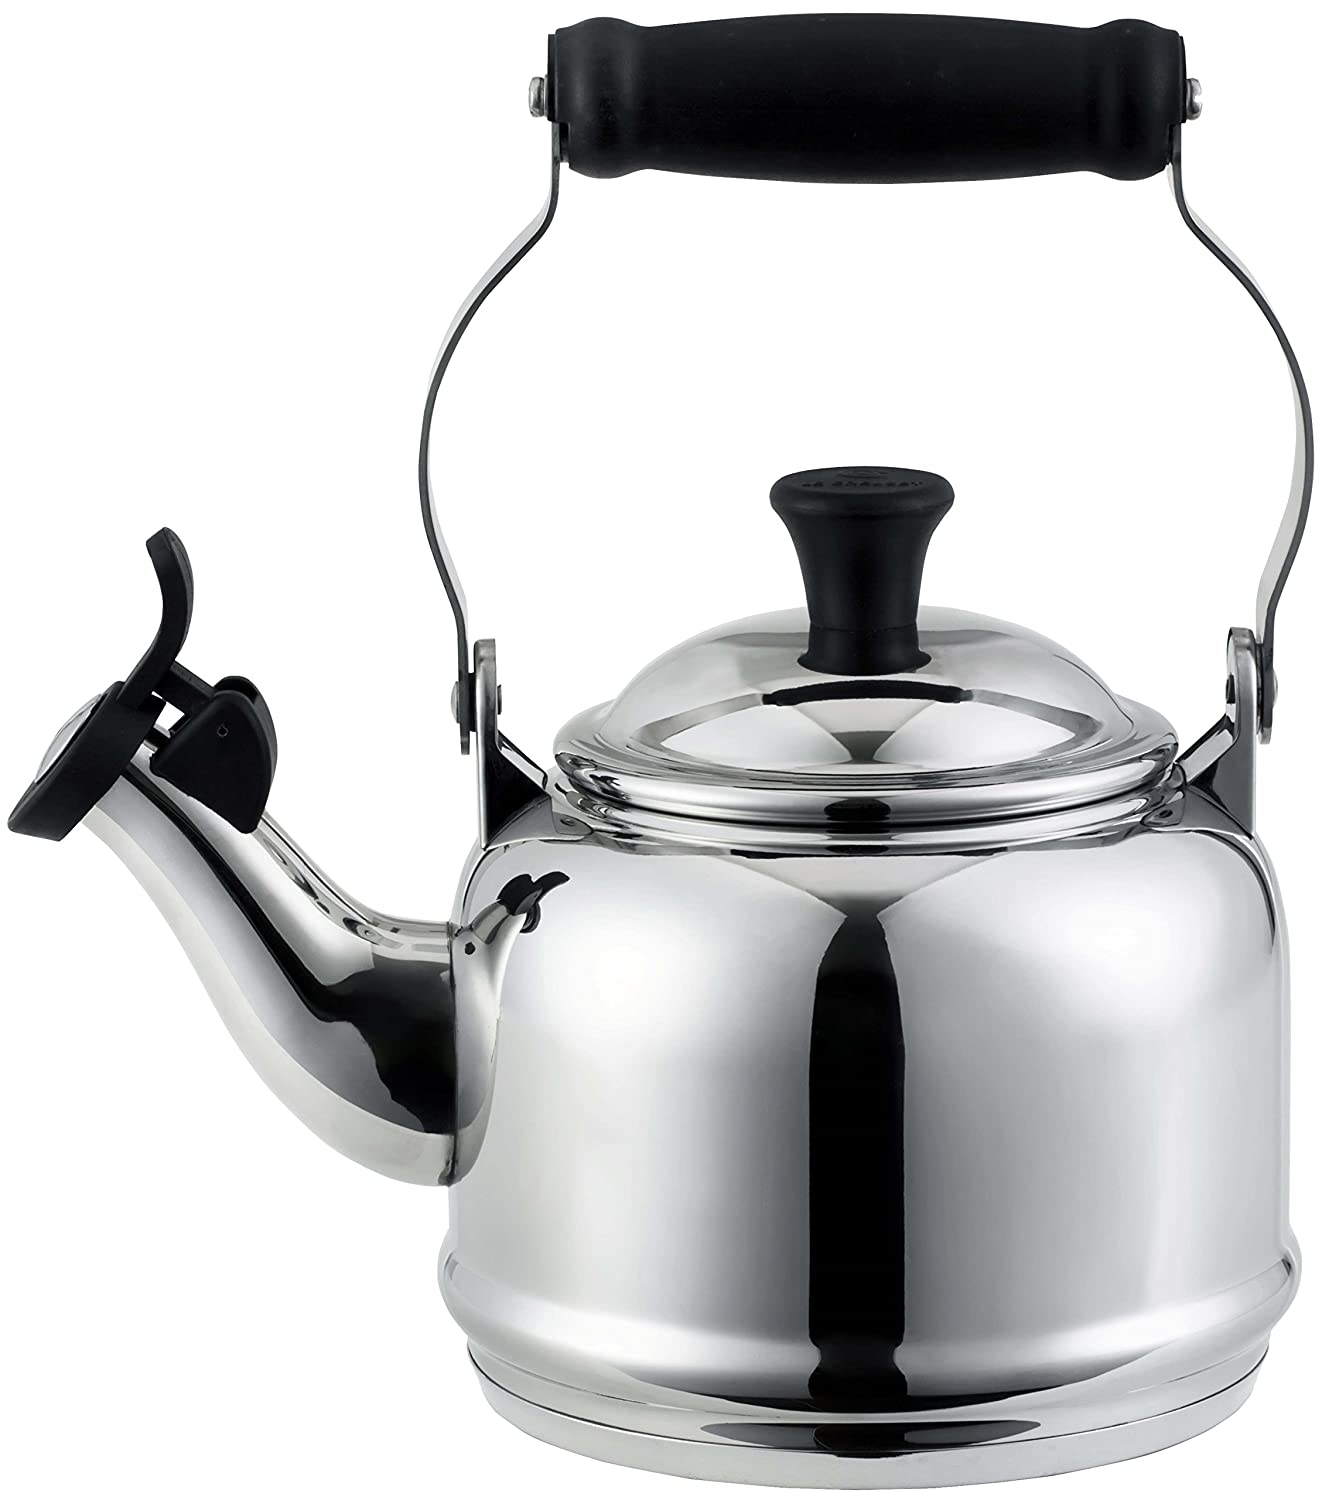 Le Creuset 1.2 Quart Stainless Steel Demi Tea Kettle: Amazon.co.uk ...